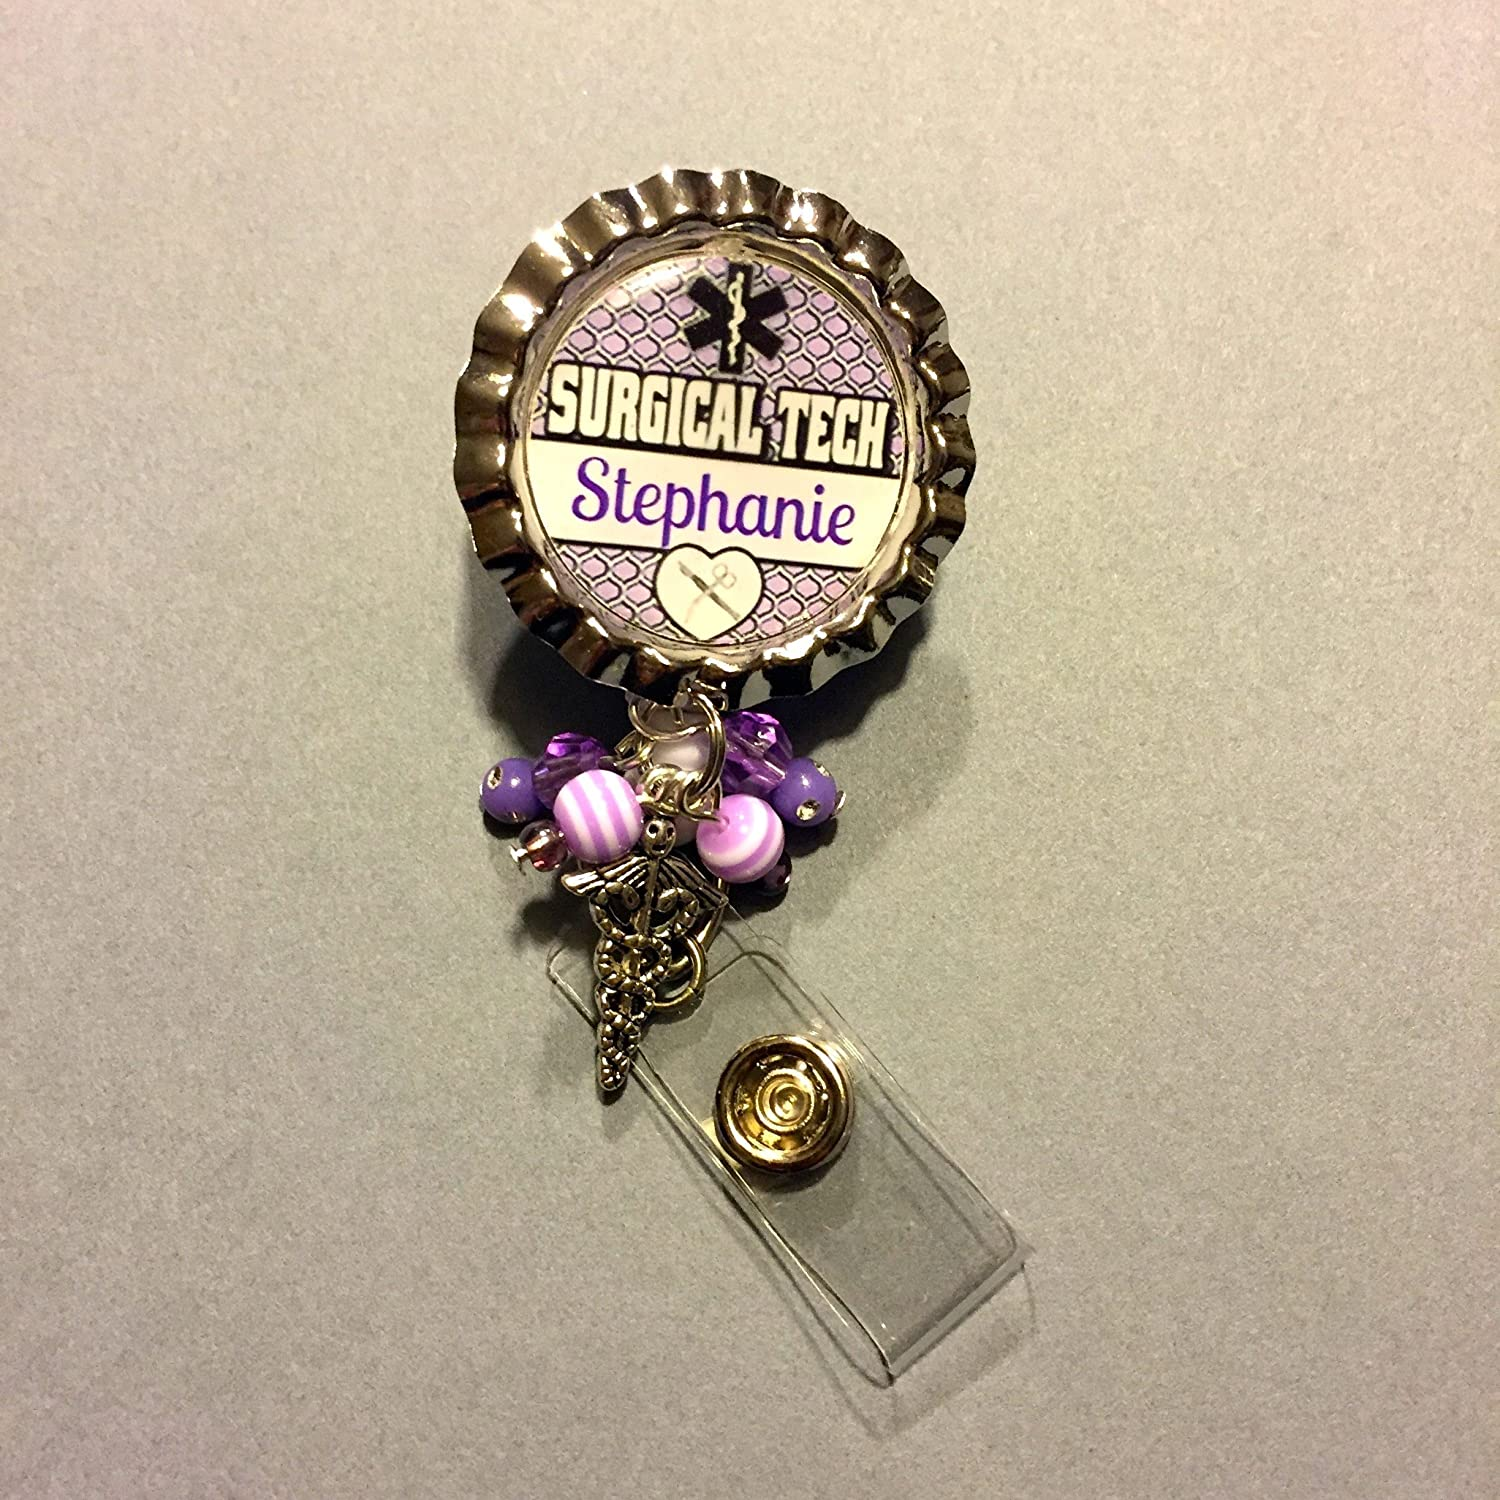 Personalized Surgical Tech spring clip Badge ID holder with retractable reel with coordinating beads and caduceus charm